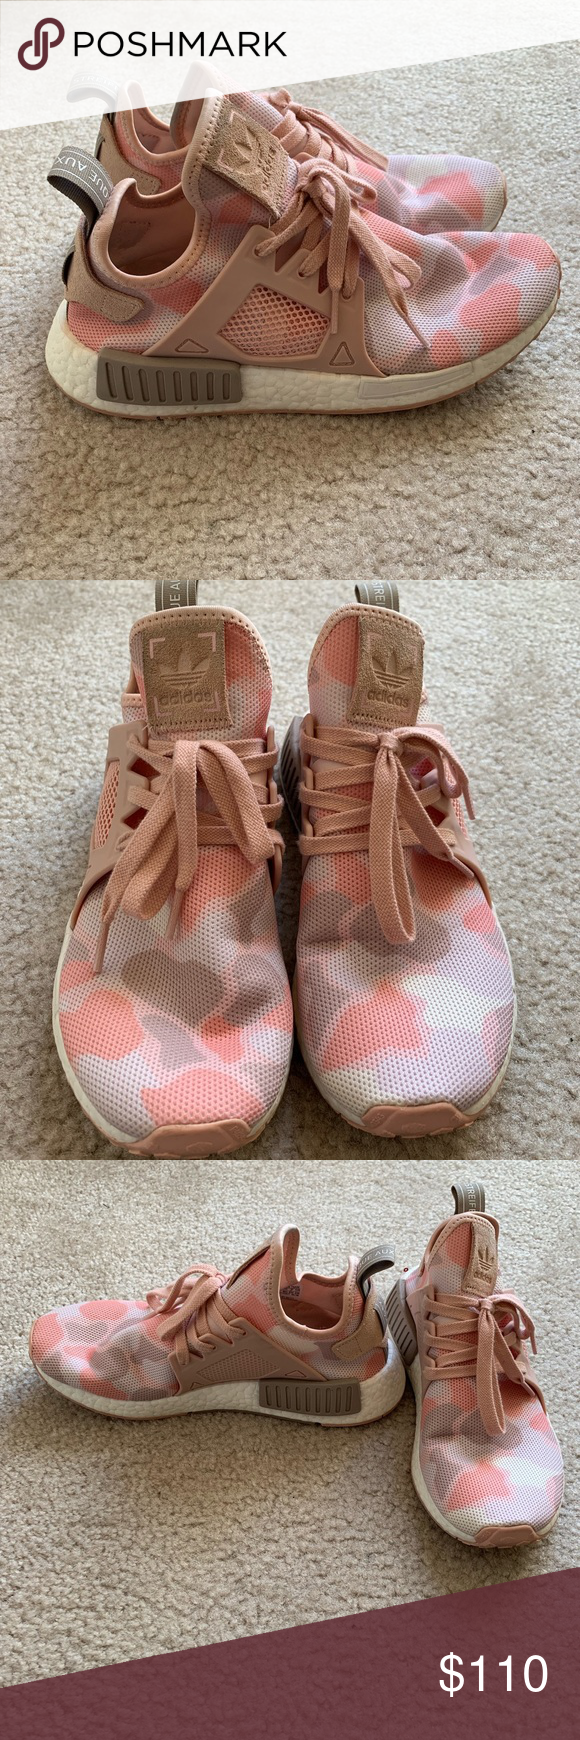 outlet store 3622e f65cf Pink Camp NMD XR1 Pink Camo NMD XR1 Adidas. Size 8.5 women ...